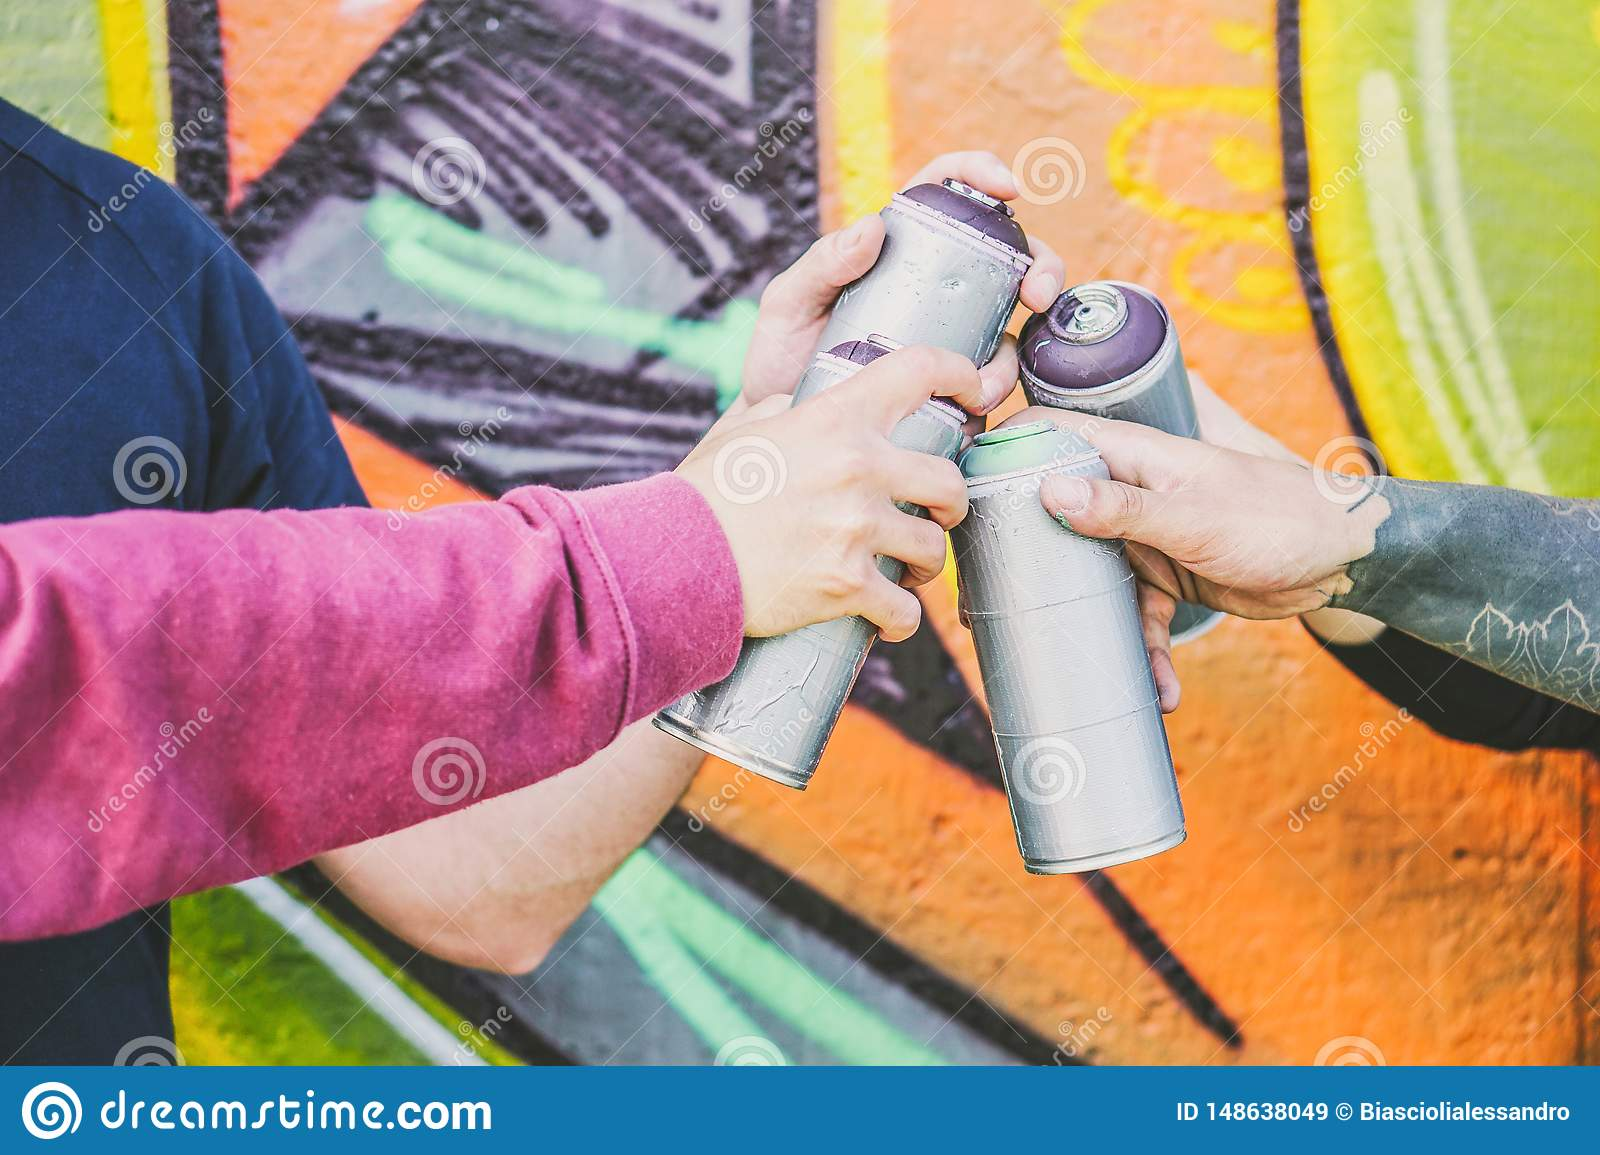 Close up hands of people holding color spray cans against the graffiti wall - Graffiti artists at work